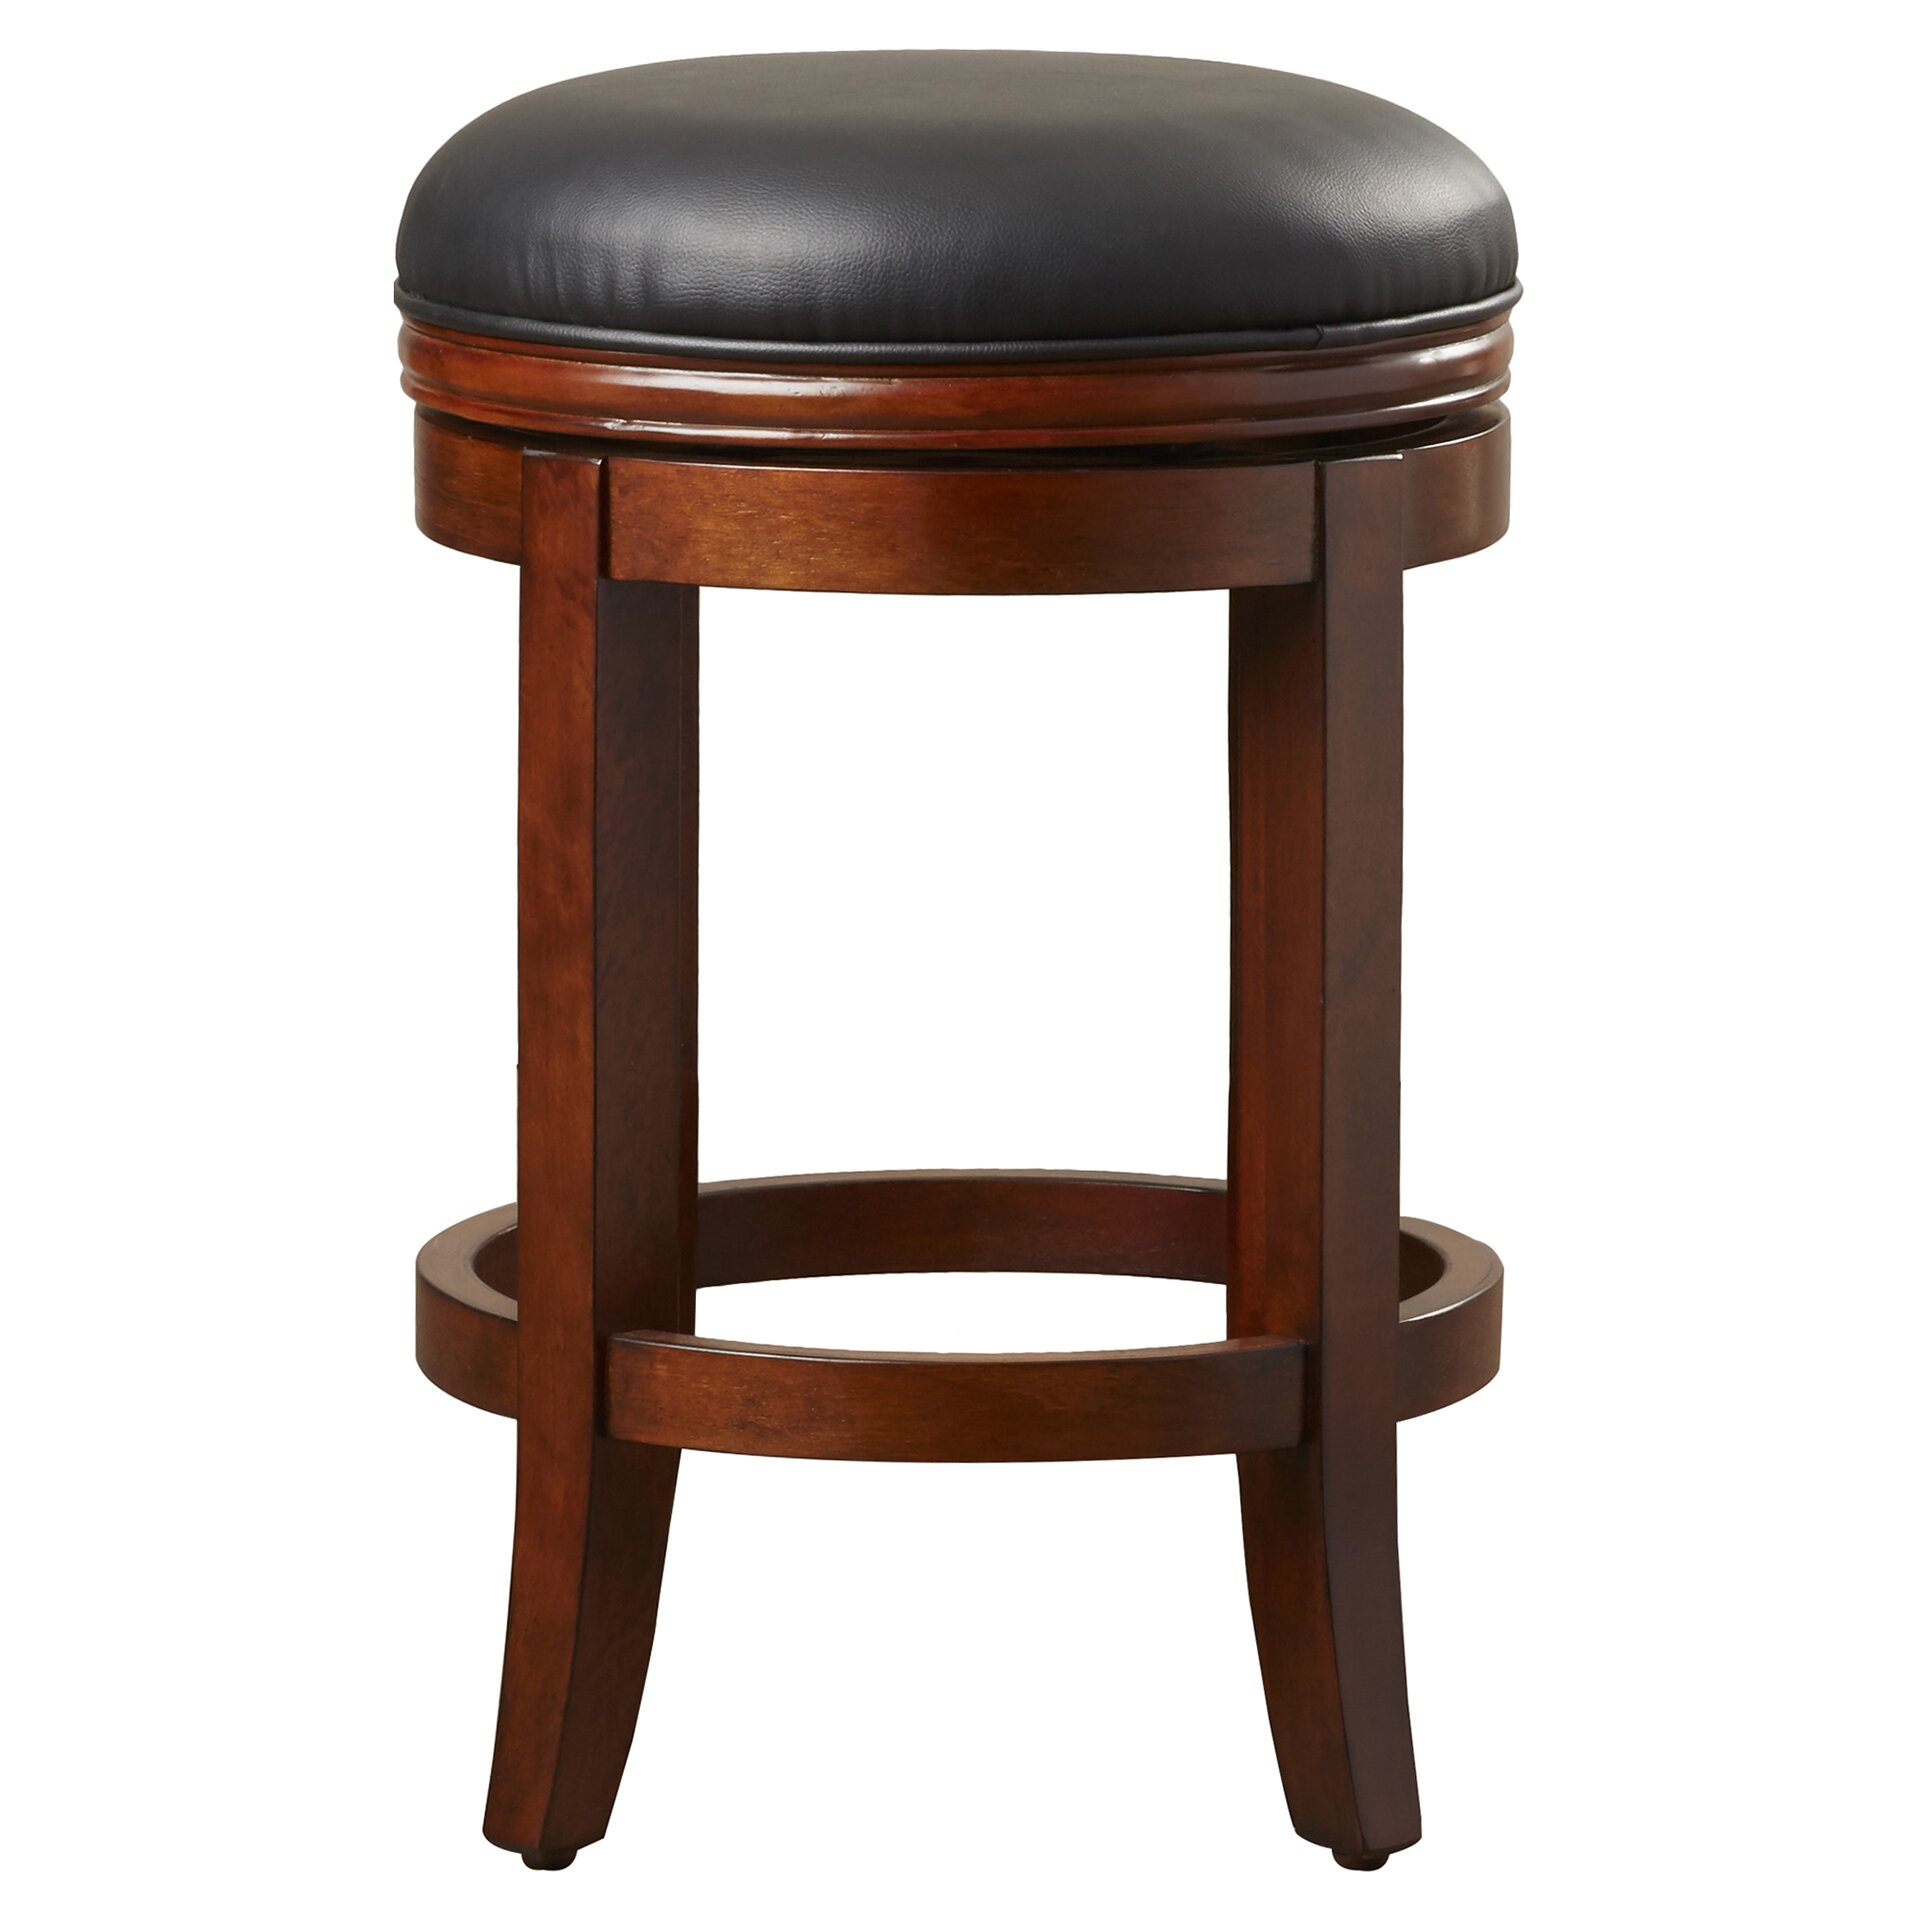 Darby home co champneys 26 swivel bar stool reviews wayfair supply Home bar furniture clearance